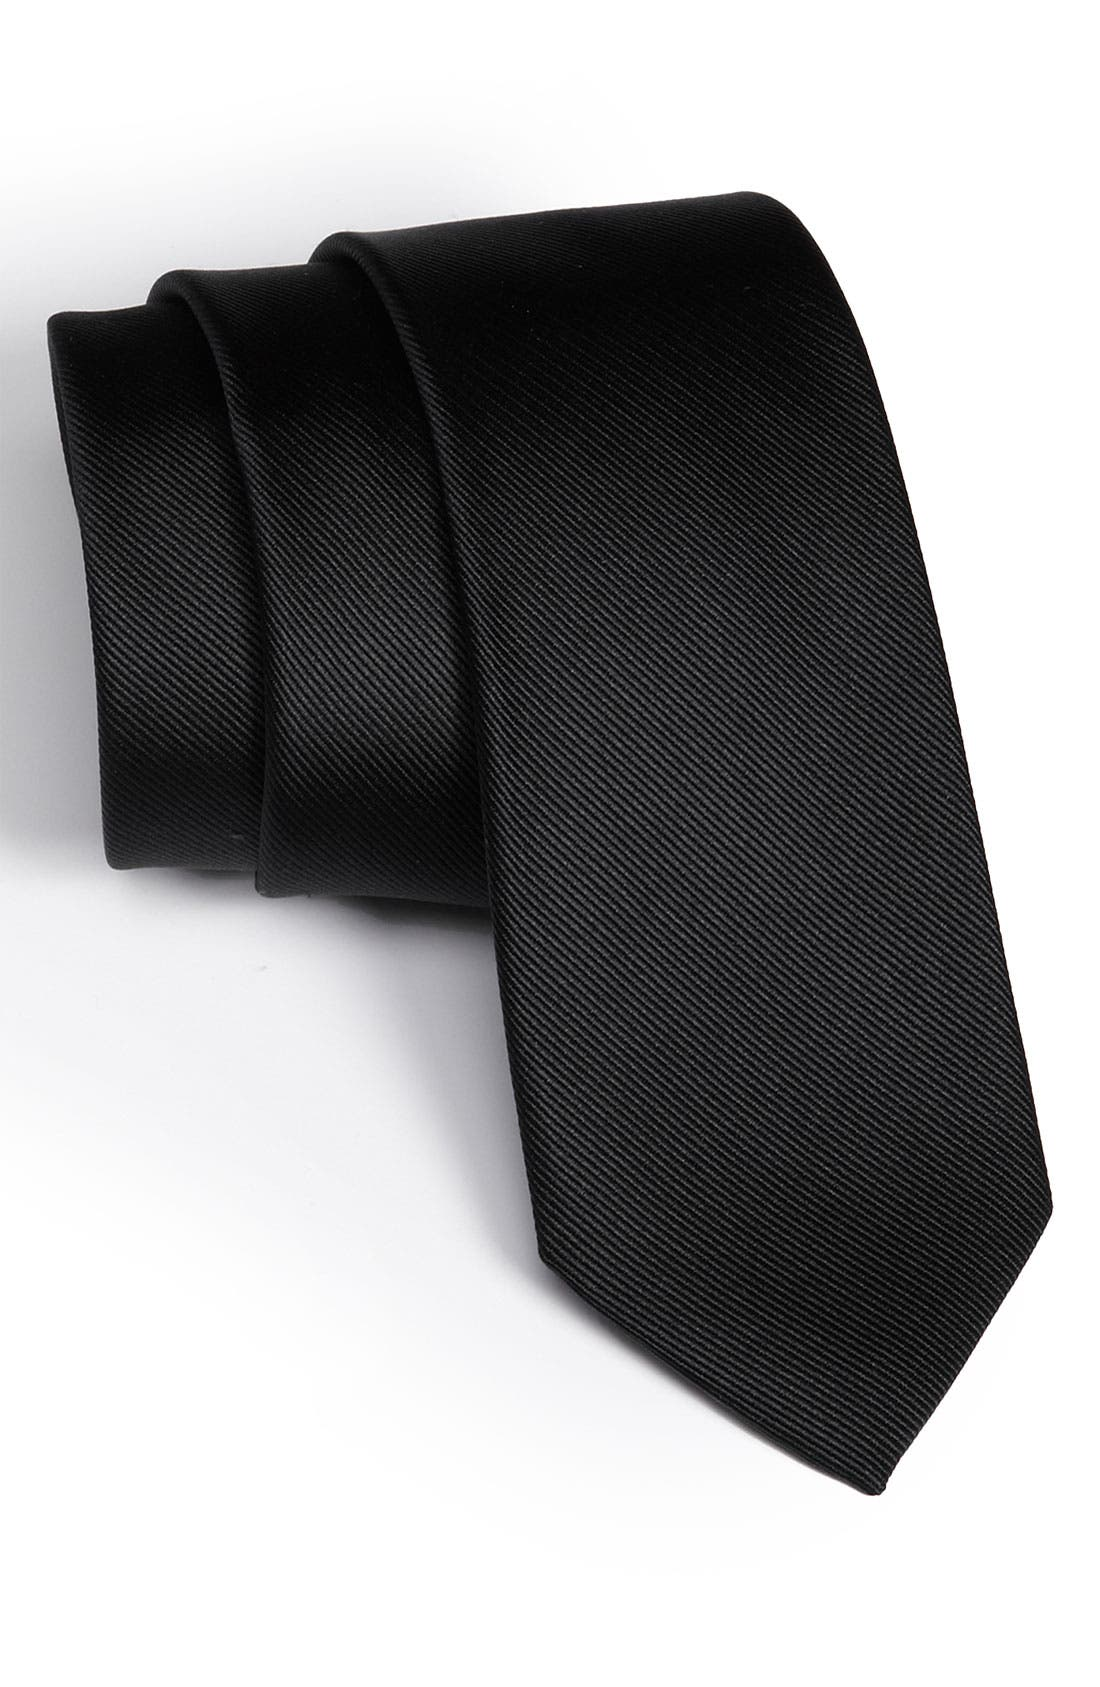 Alternate Image 1 Selected - Public Opinion Solid Silk Tie